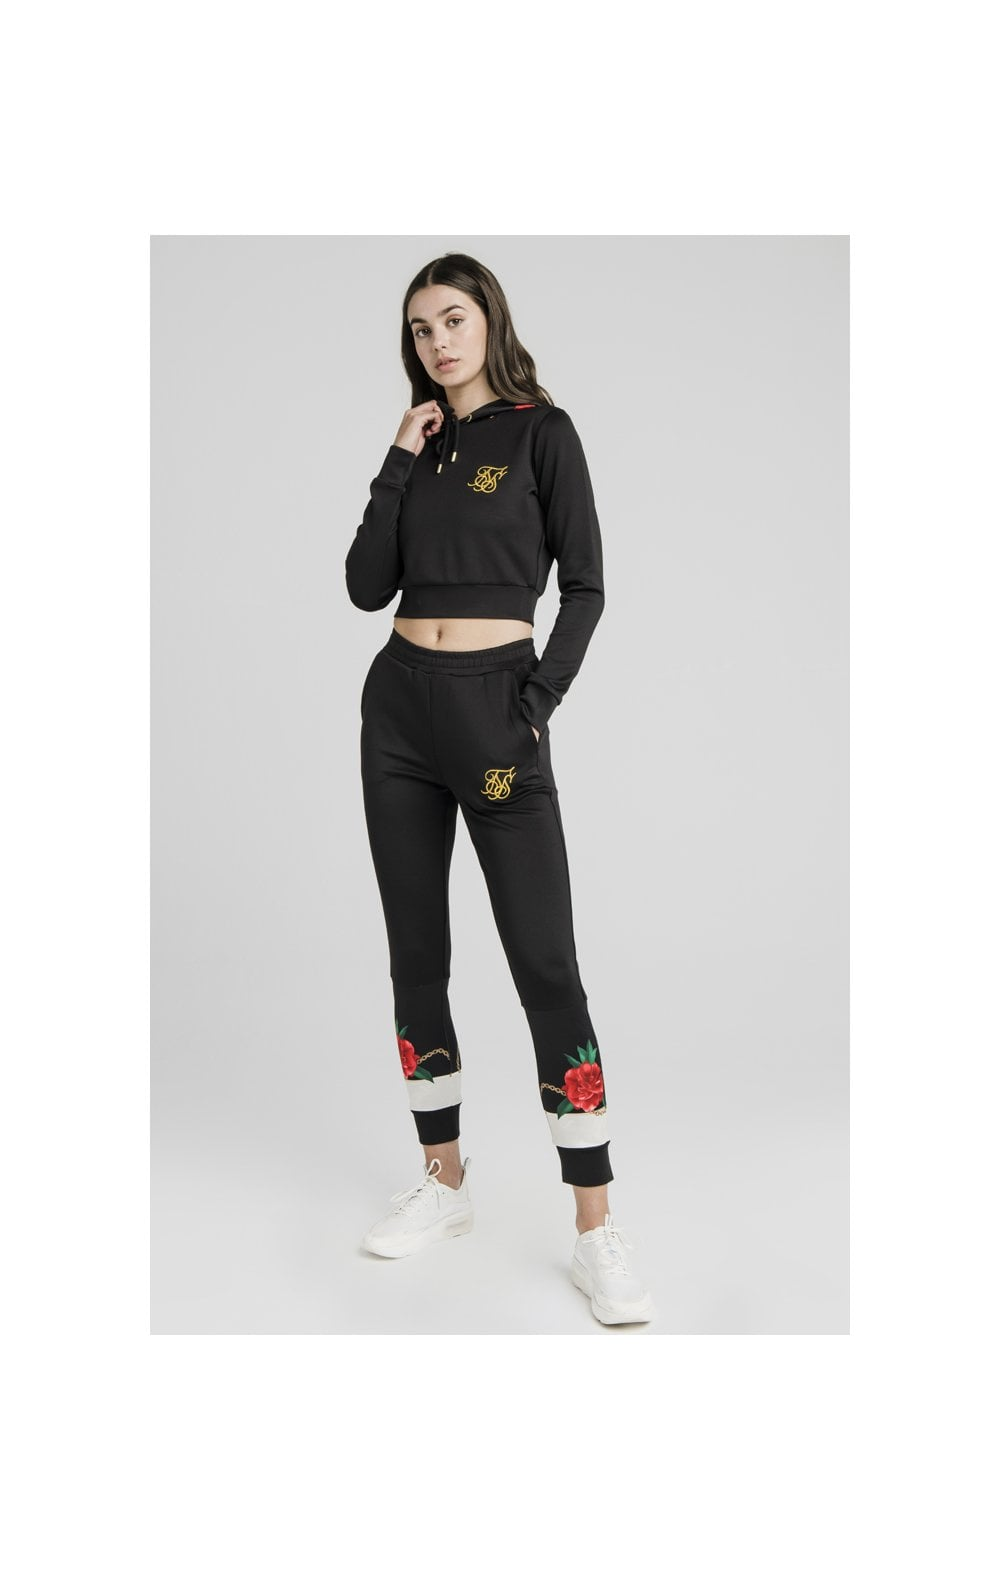 SikSilk Majestic Cropped Track Top – Black (3)